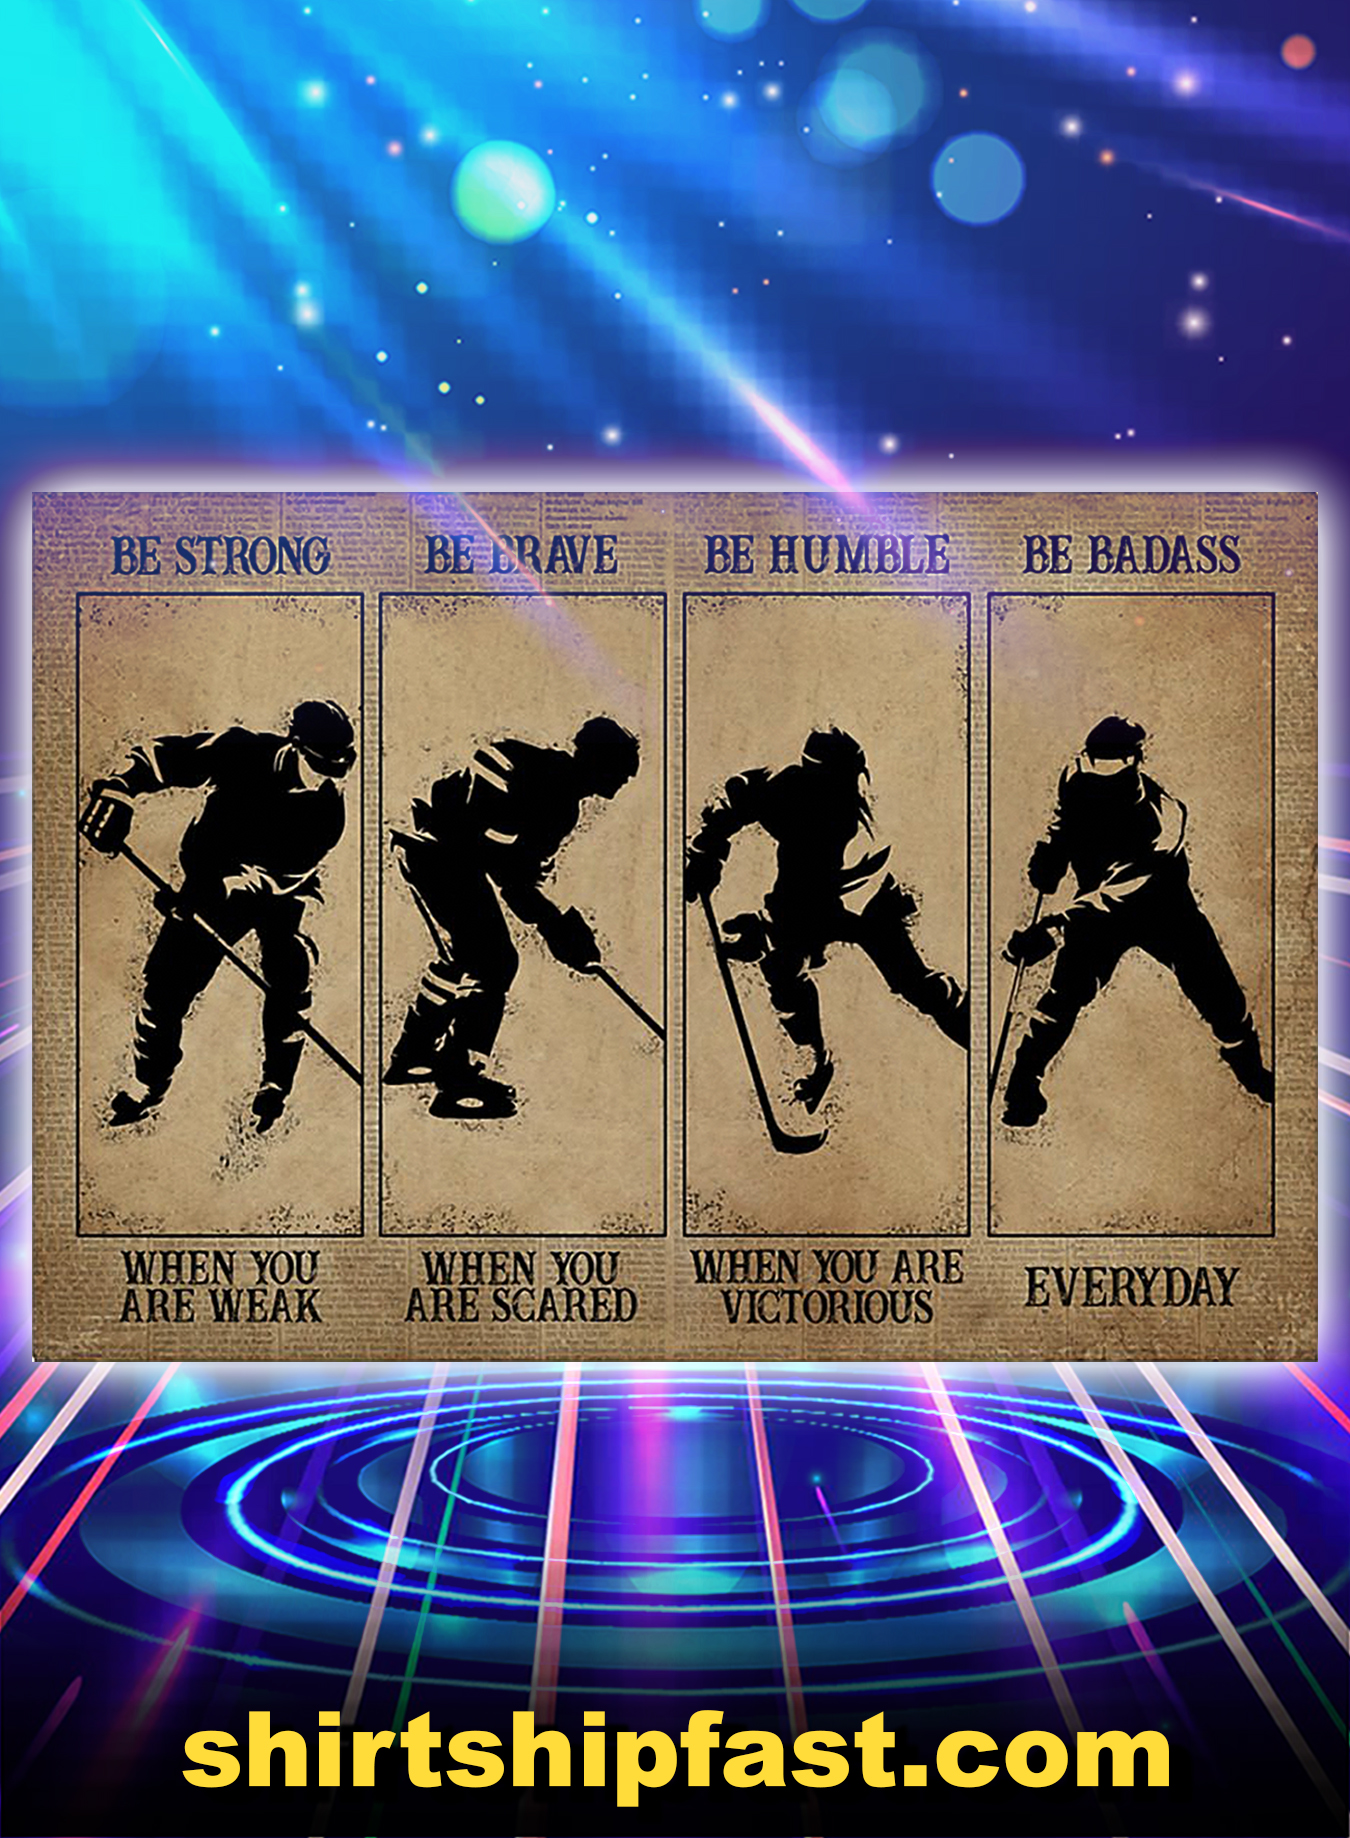 Hockey be strong be brave be humble be badass poster - A2